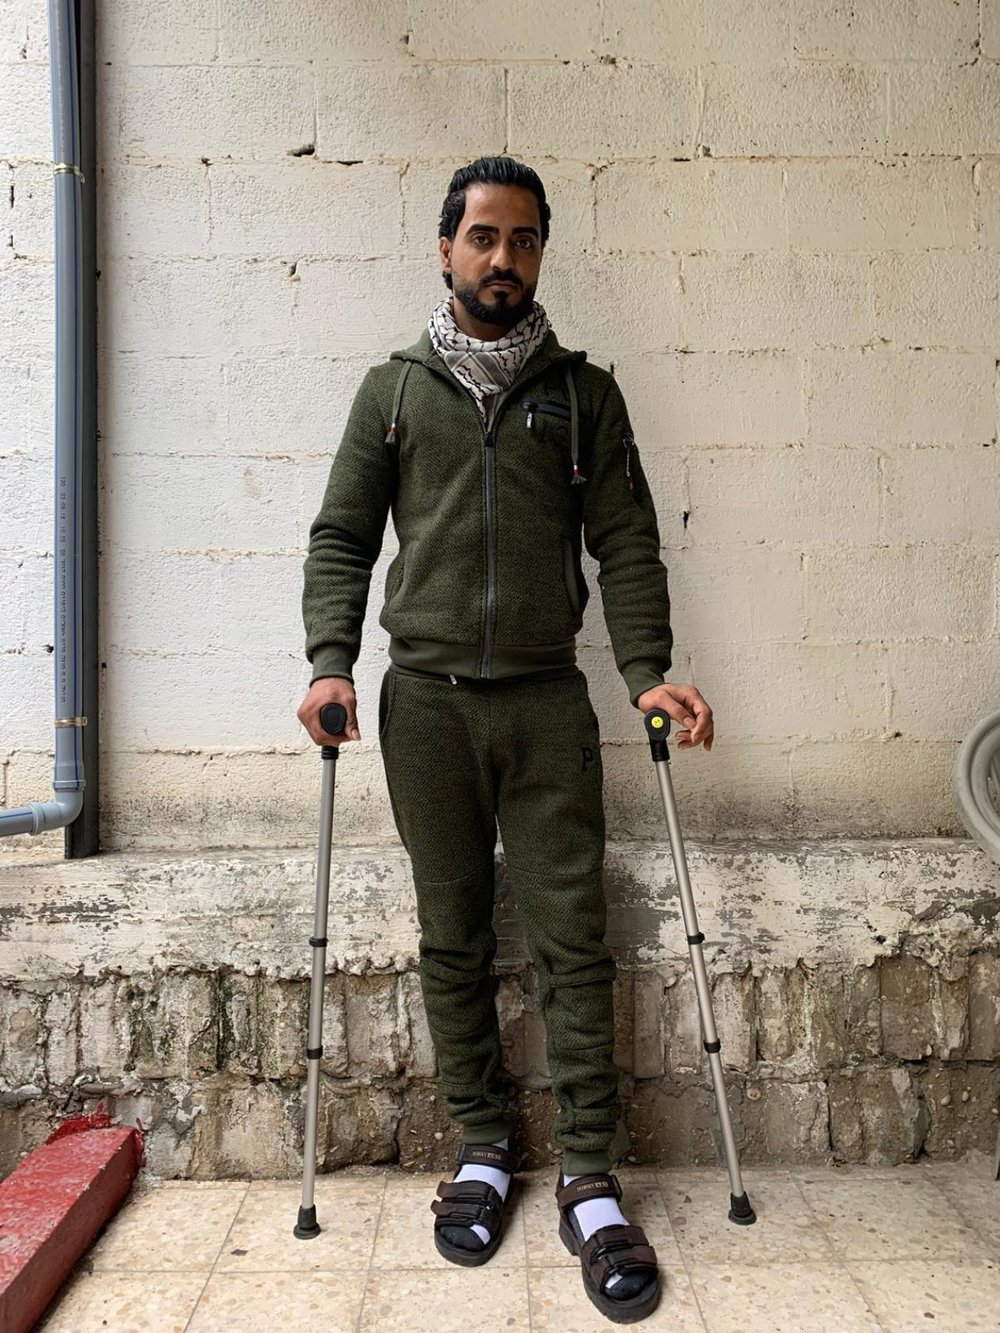 Fahed Zuhud, 29, has a bone infection resistant to antibiotics Above image and header image provided by Médecins Sans Frontières